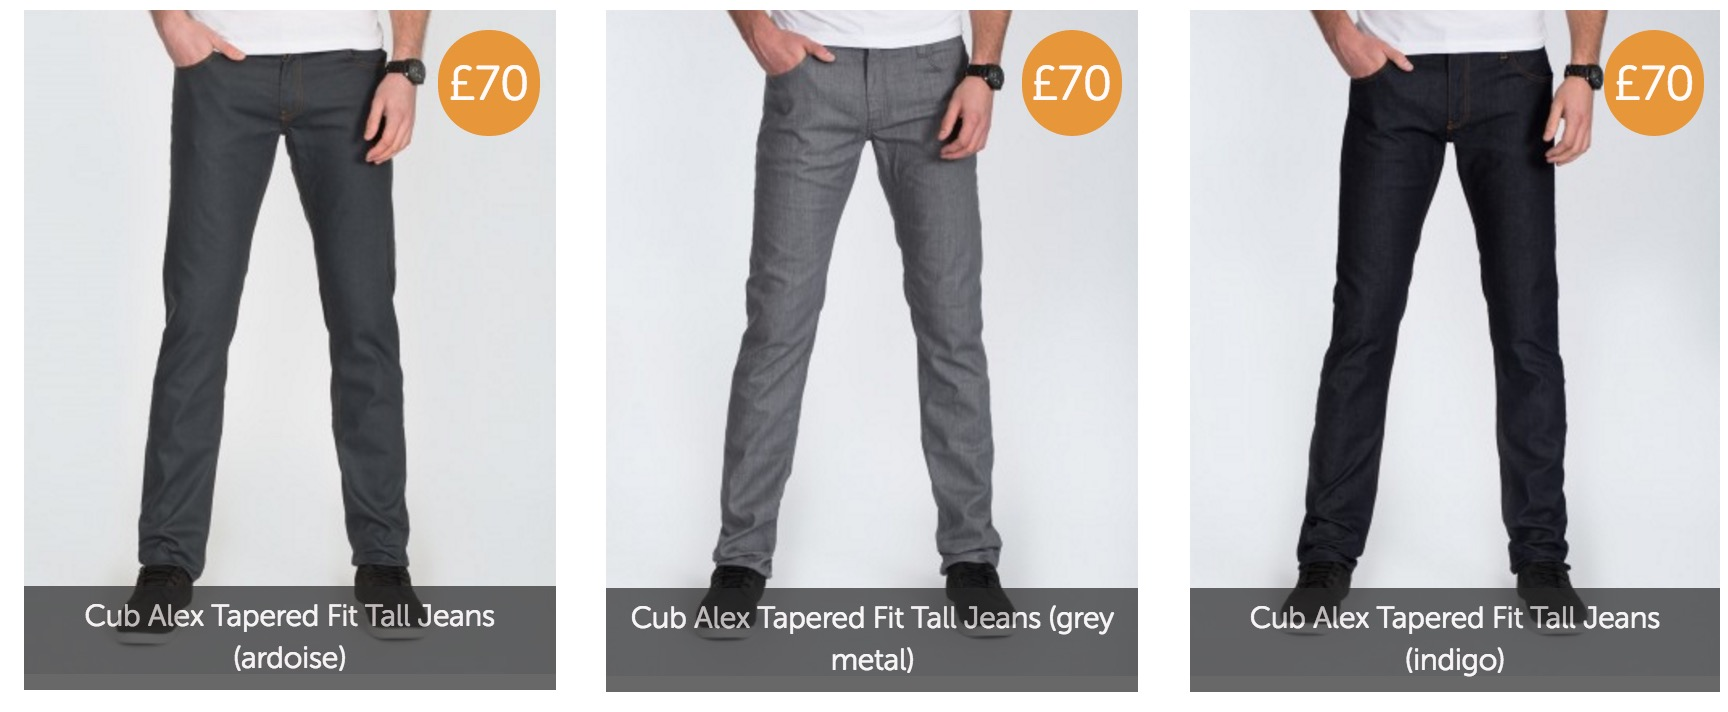 2 tall tapered jeans